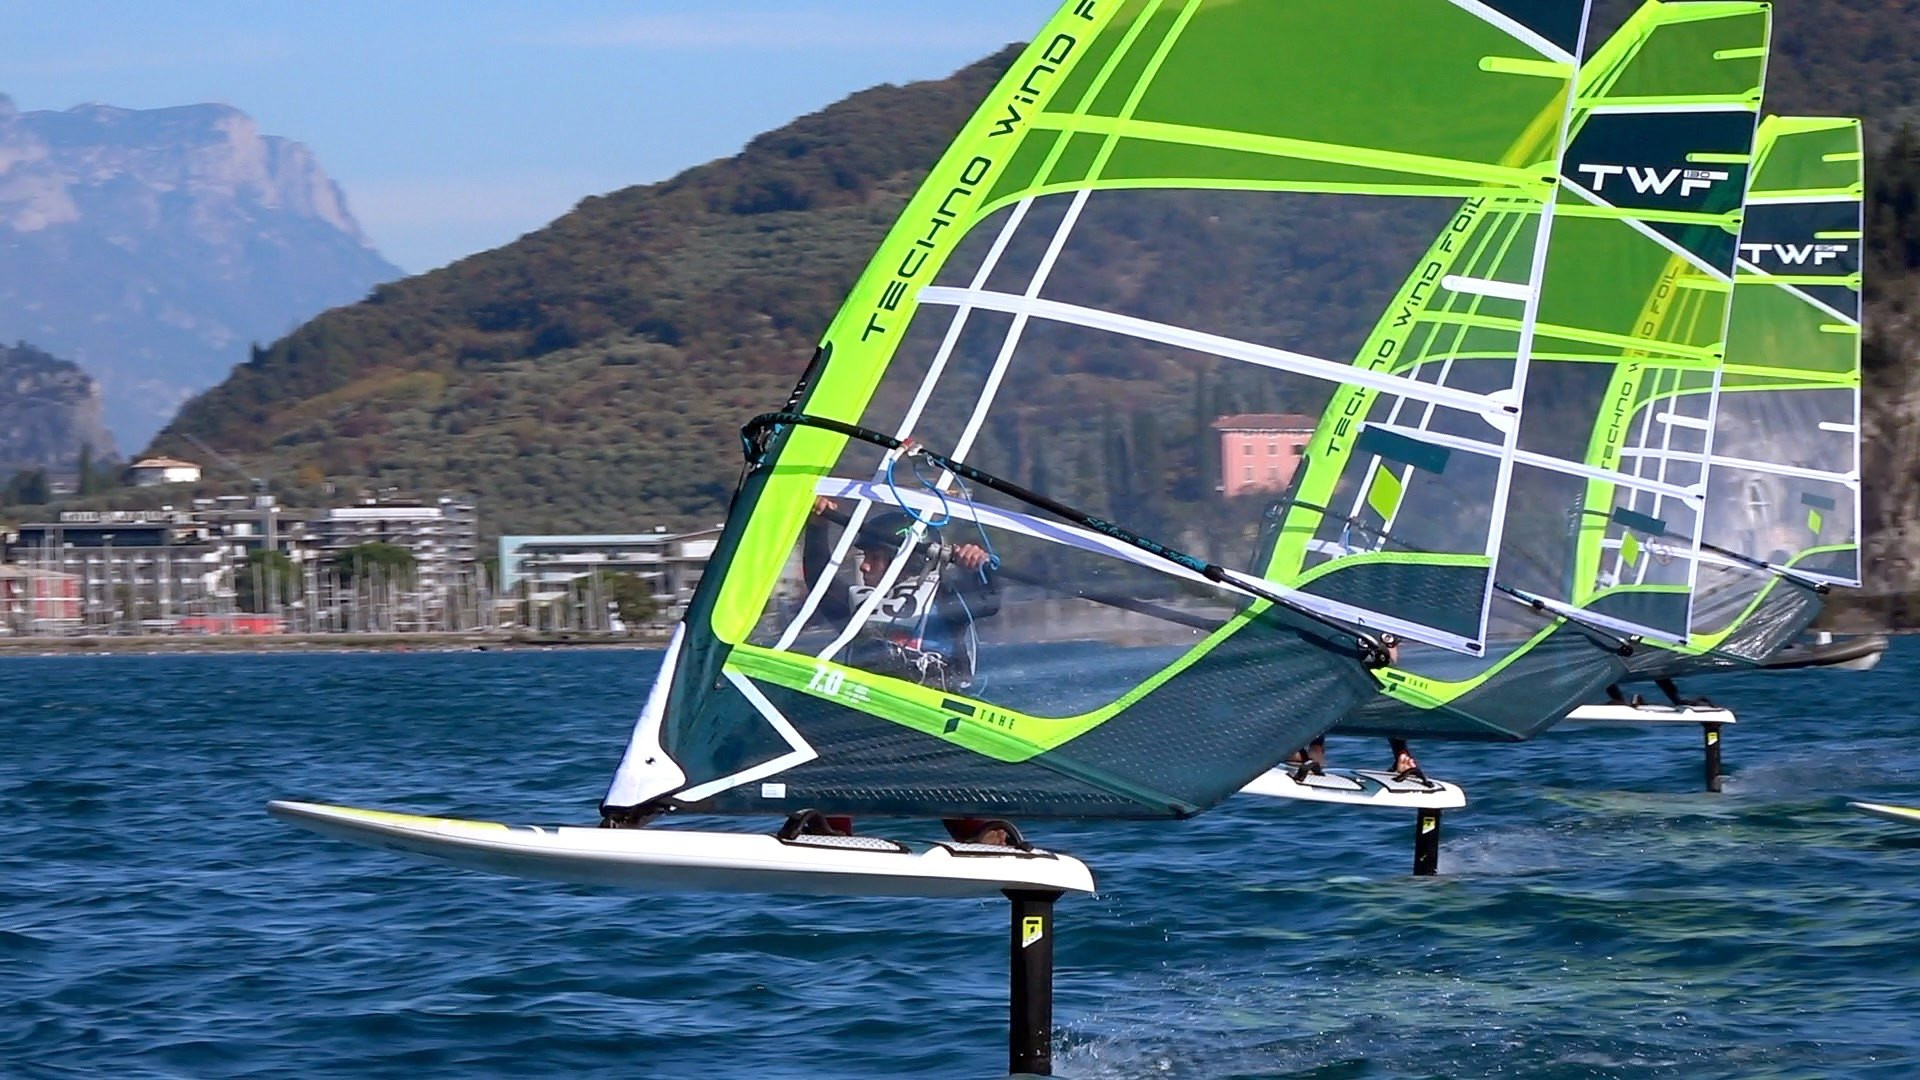 Tahe Techno Wind Foil